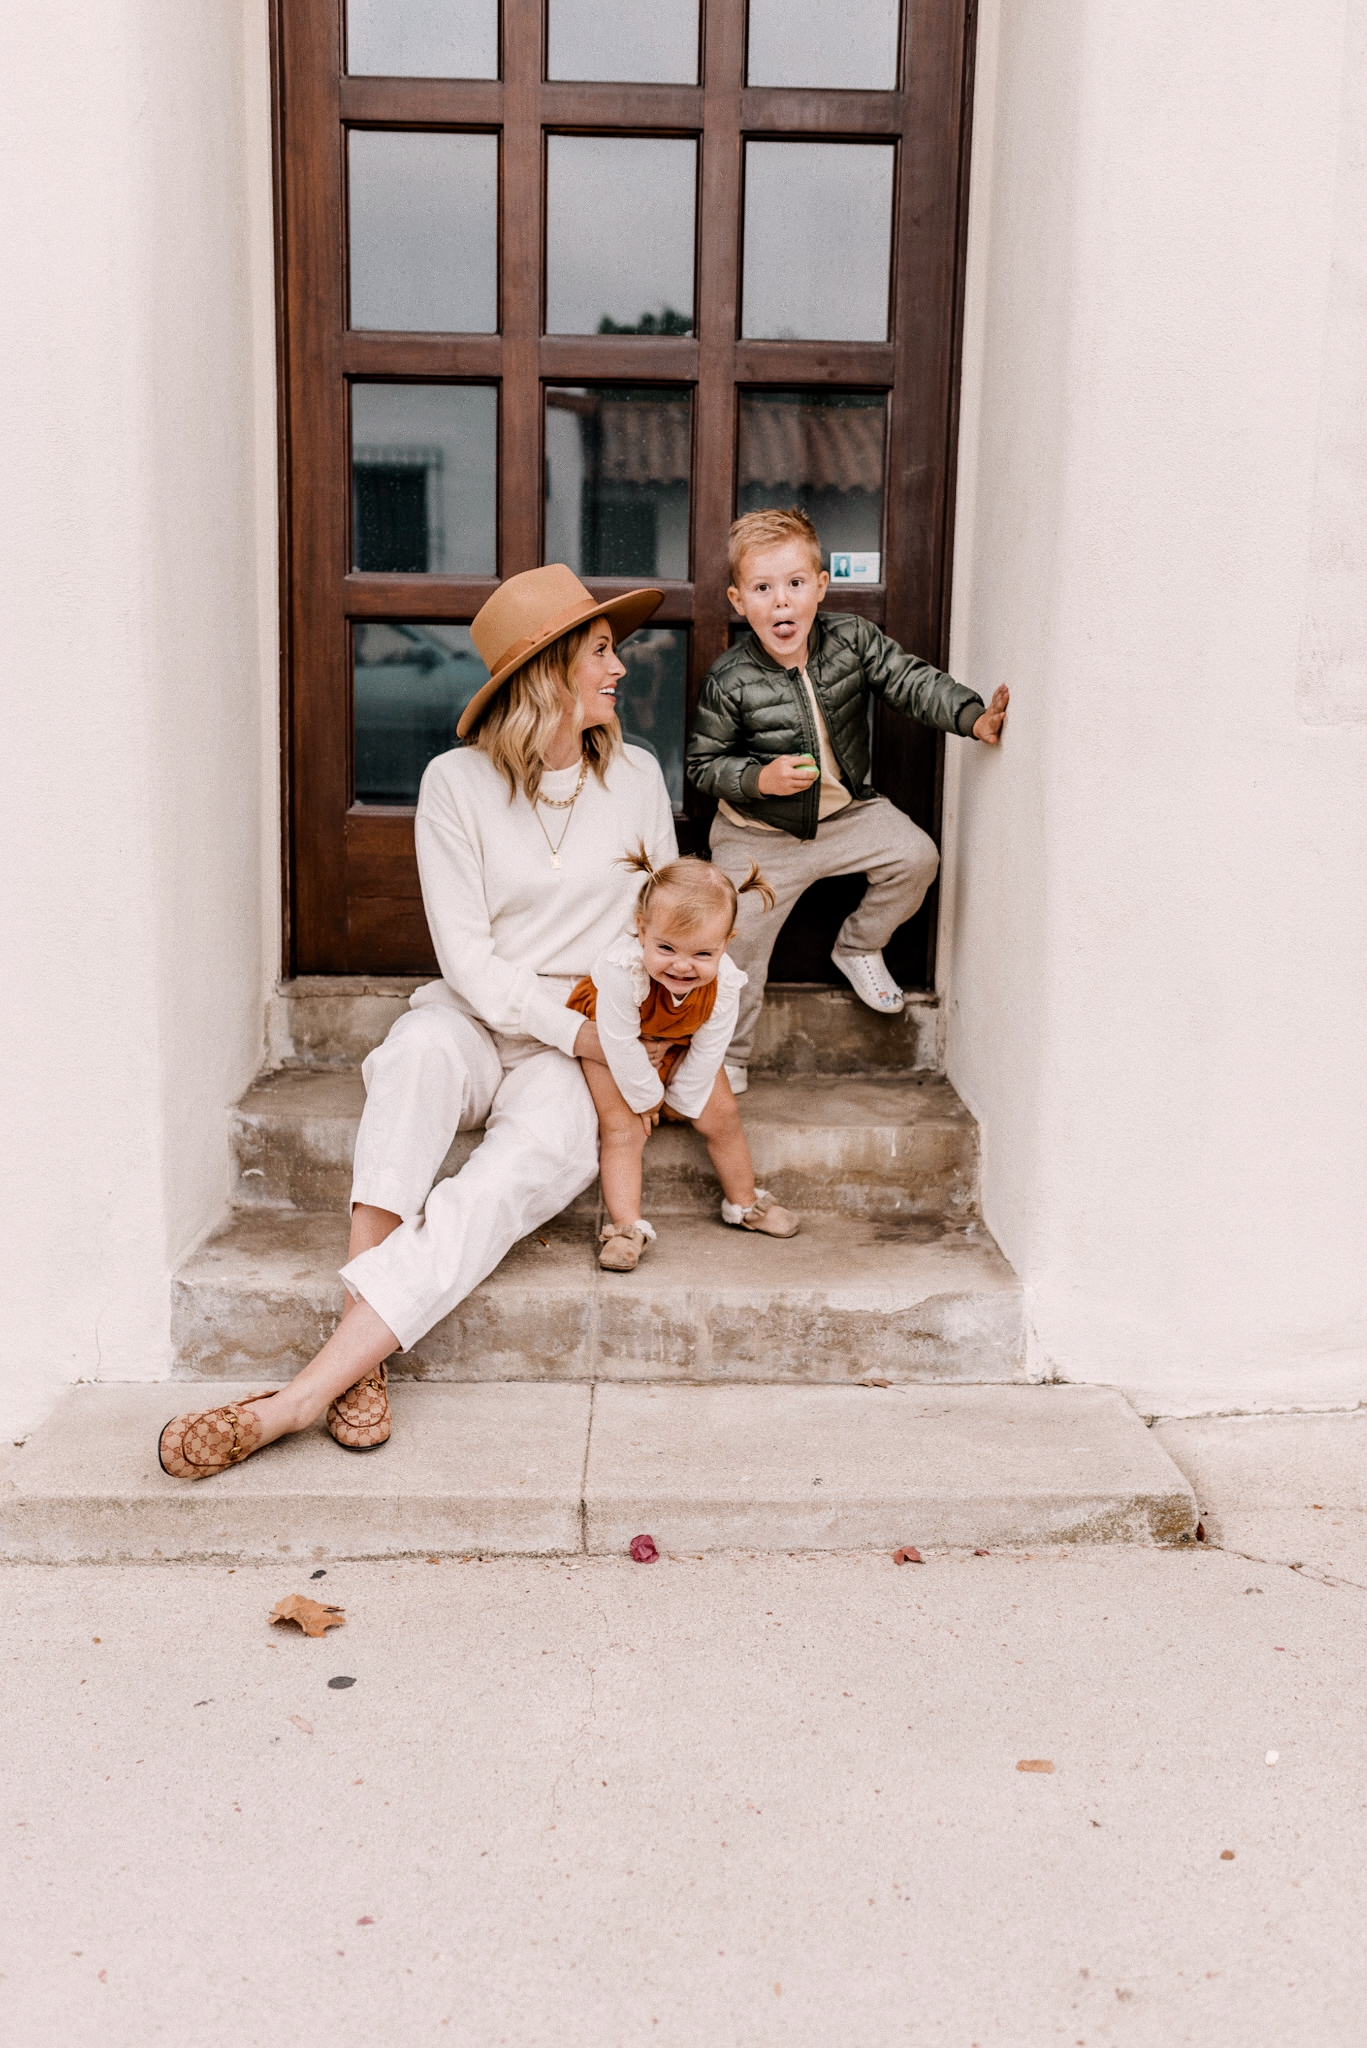 Fall fedora Hats | Kids Winter Clothes by popular San Diego motherhood blog, Navy Grace: image of a mom and her two young kids sitting together on some cement steps.